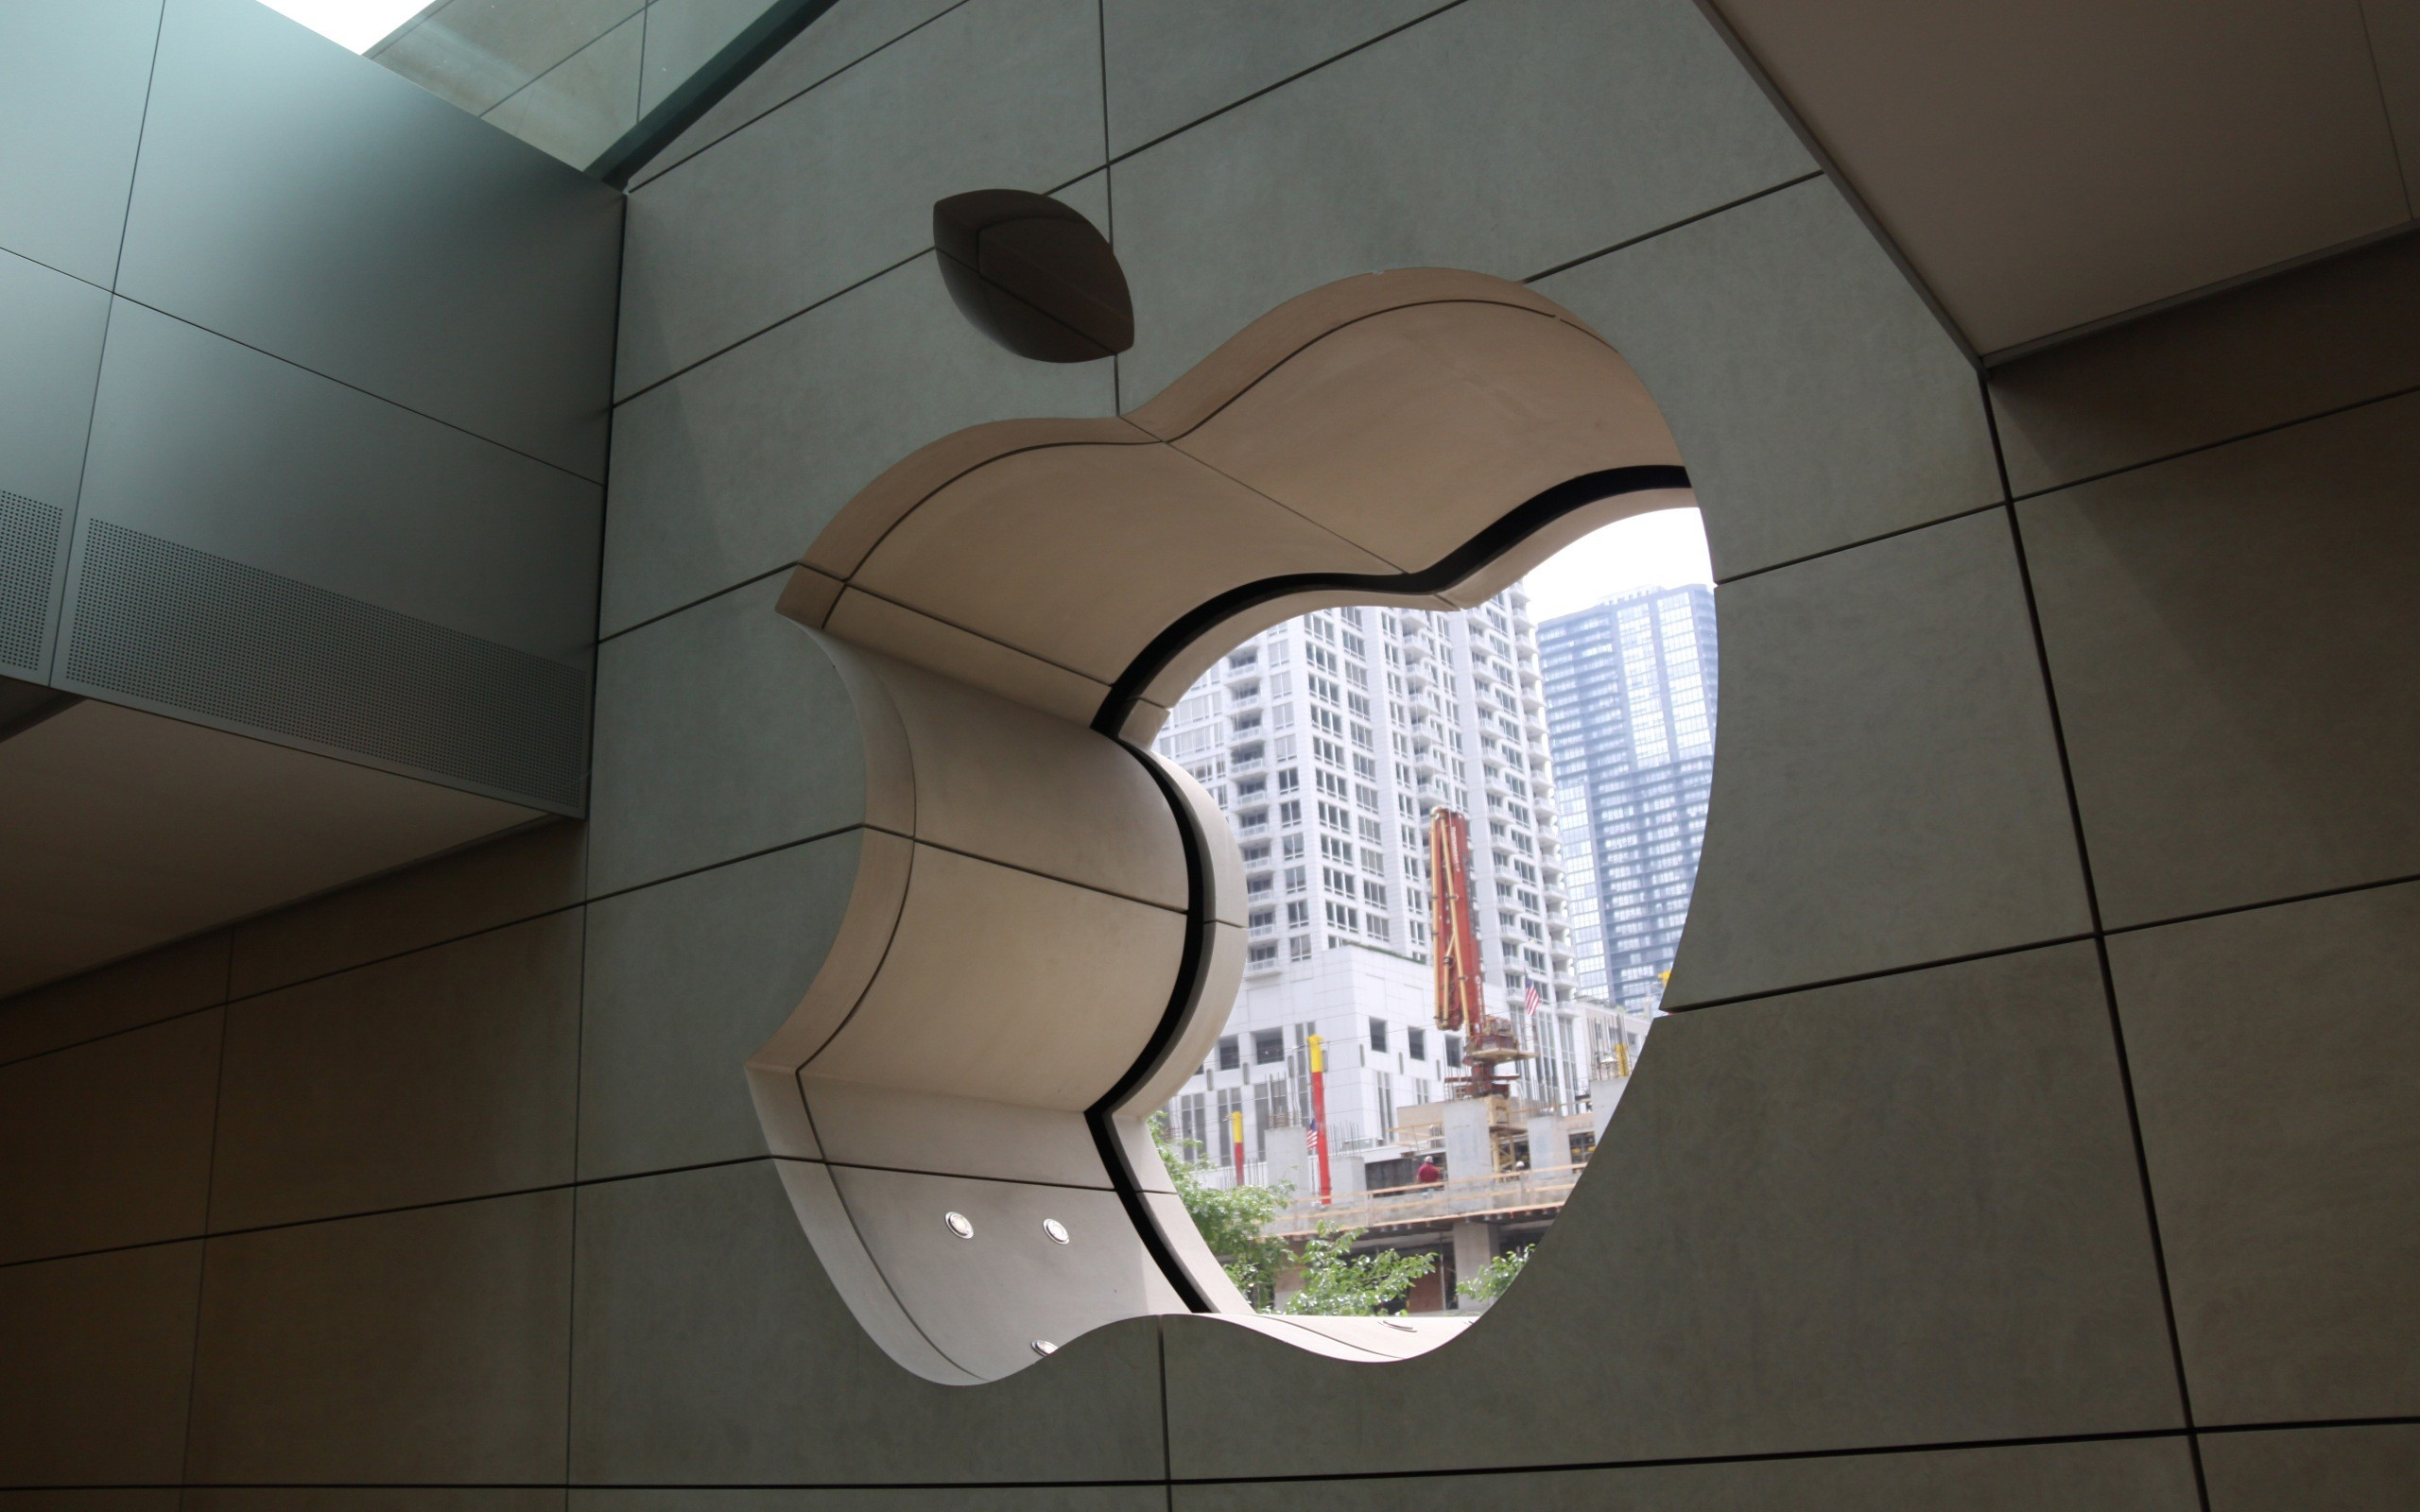 las oficinas de apple hd 2560x1600 imagenes wallpapers